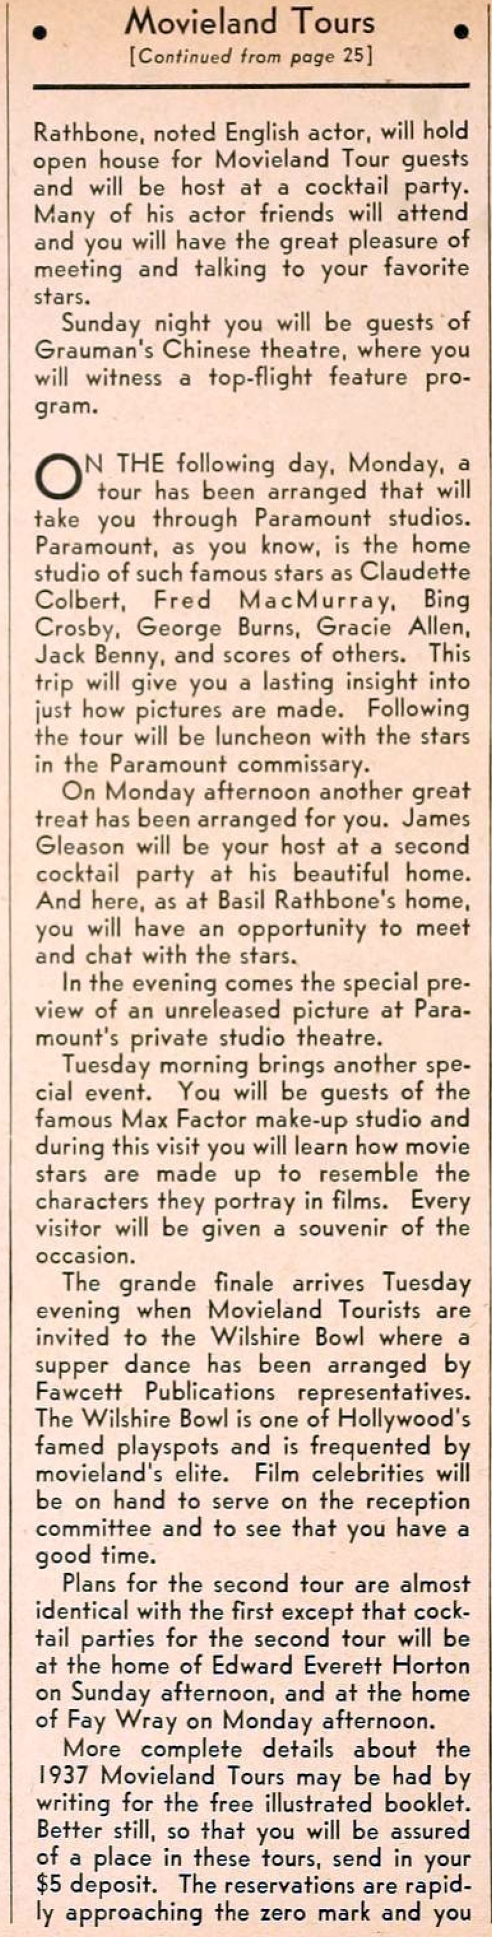 hollywood june 1937 tour 02a